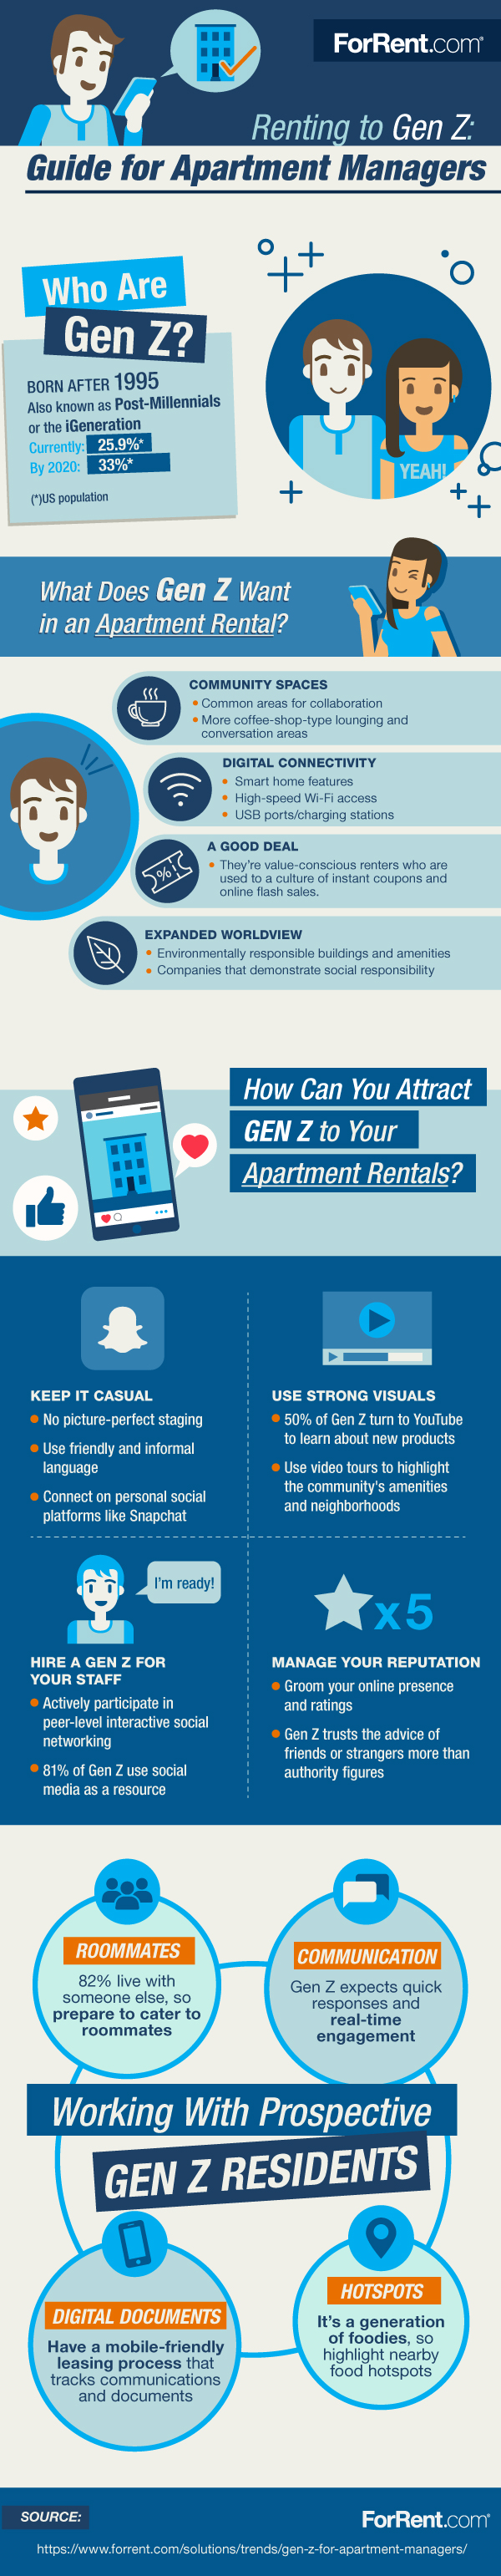 Renting to Gen Z: A Guide for Apartment Managers